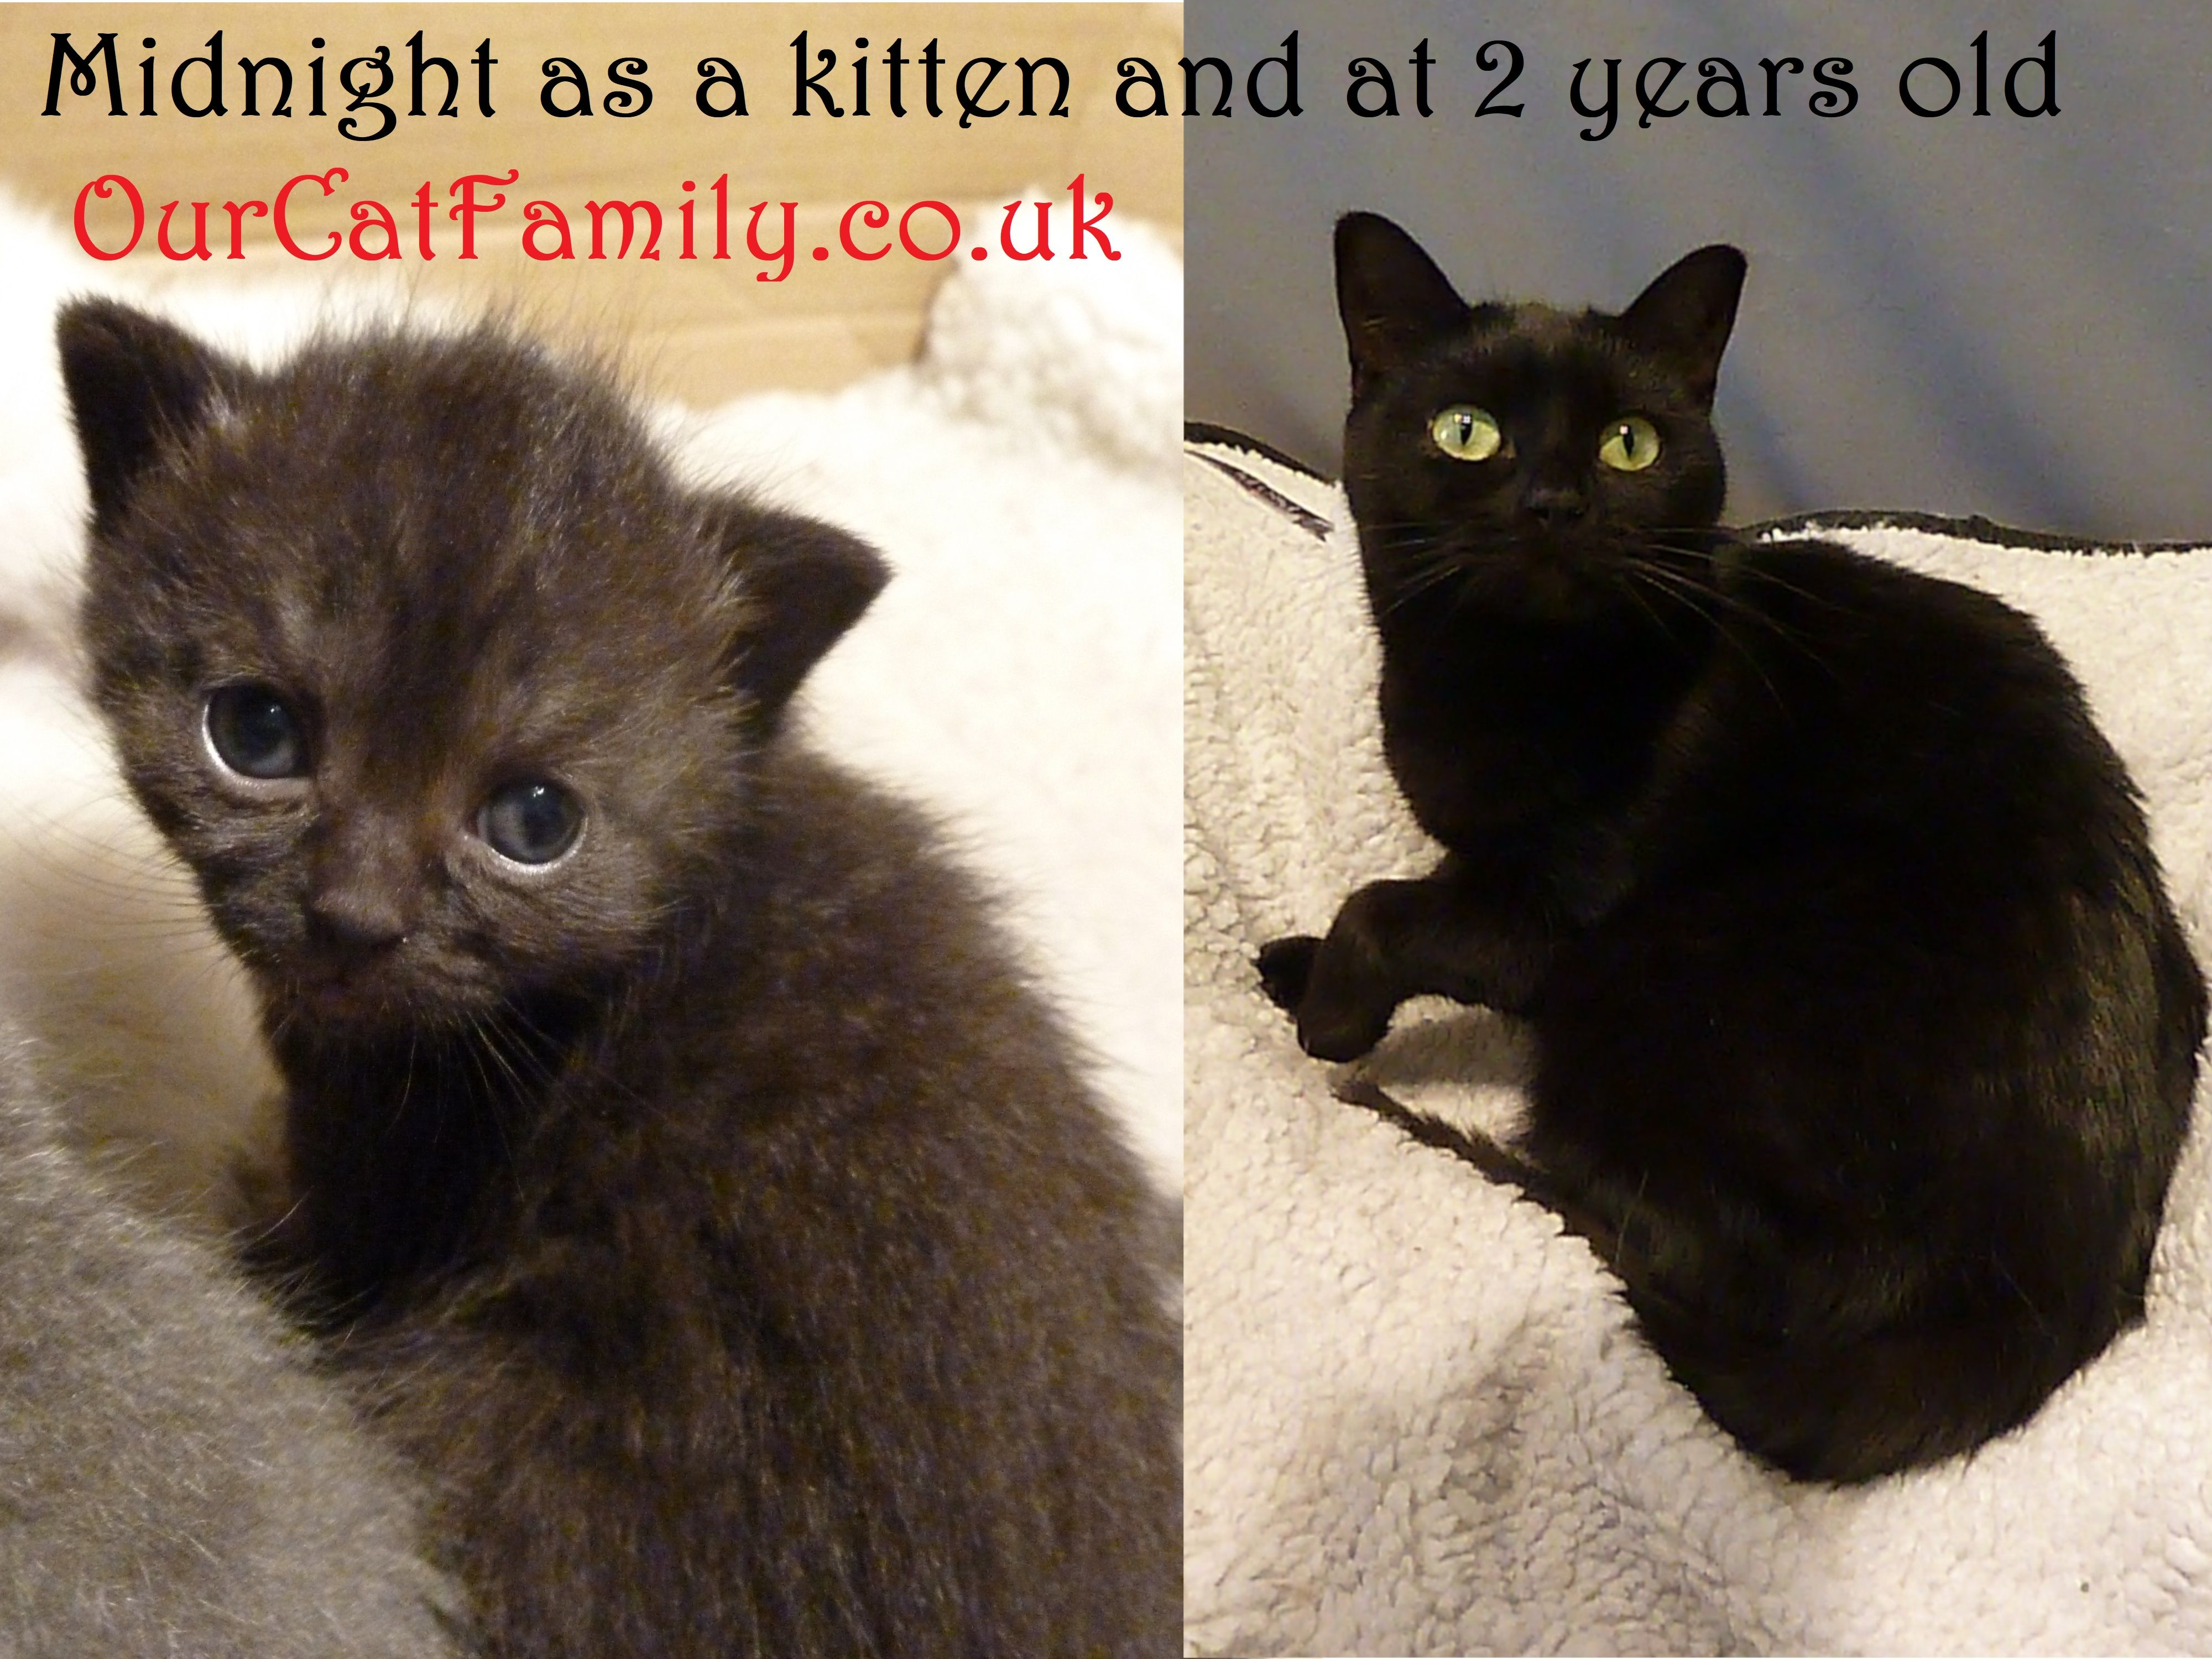 Midnight As A Kitten And At 2 Years Old Ourcatfamily In 2020 Kitten Cat Family 2 Years Old